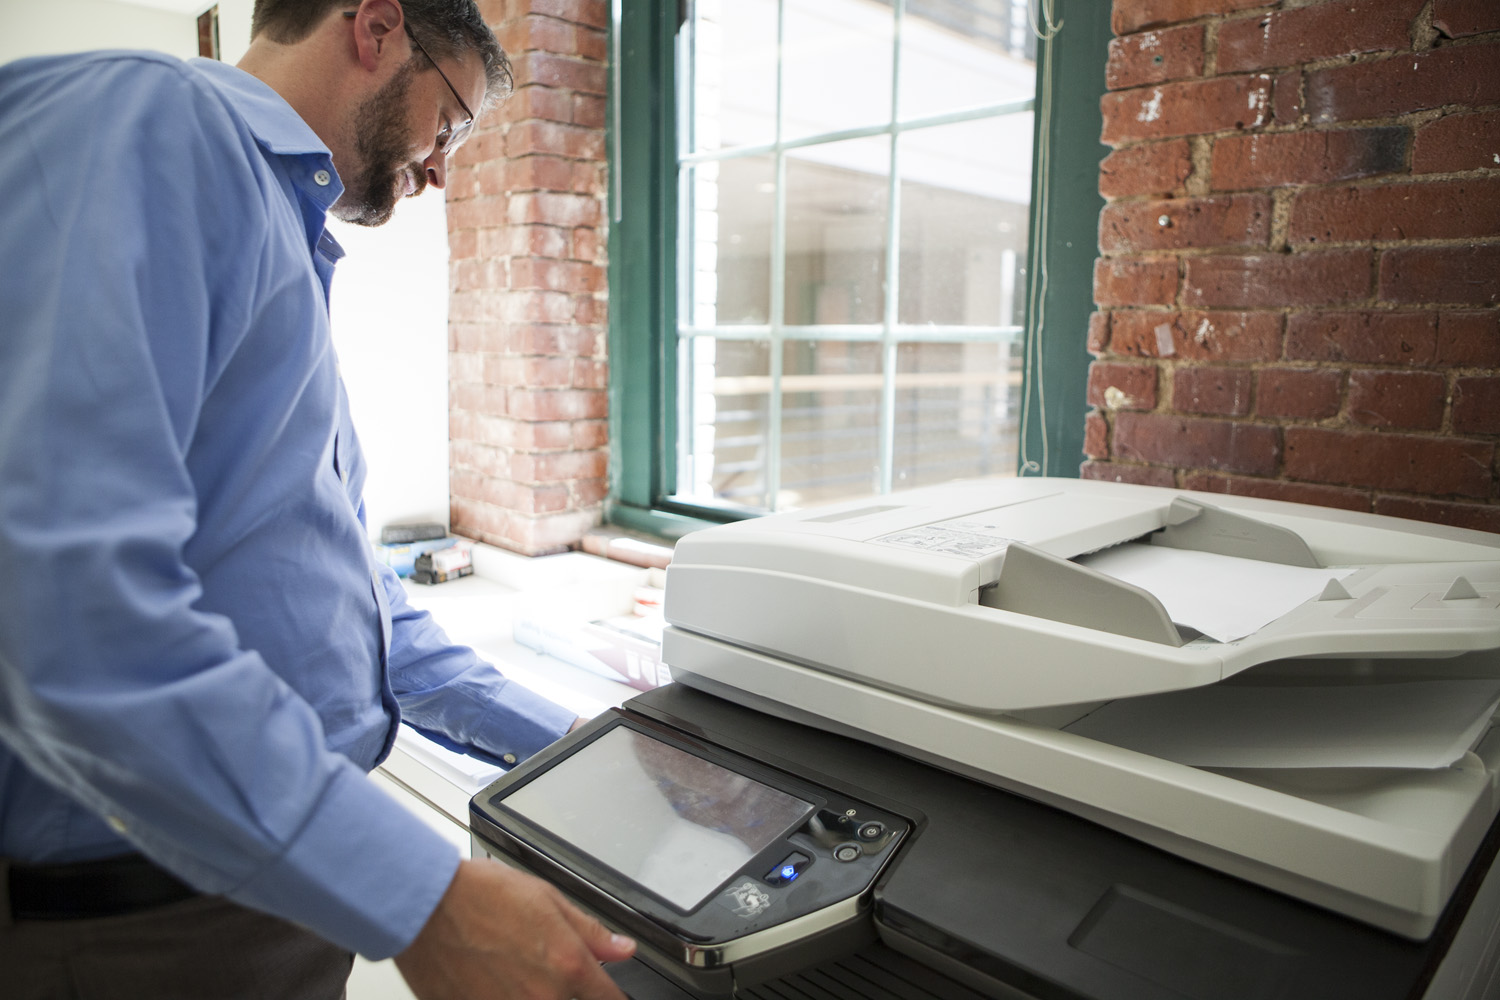 Leading Suppliers of Multifunction Printers and Photocopiers in Ireland   PCI Group